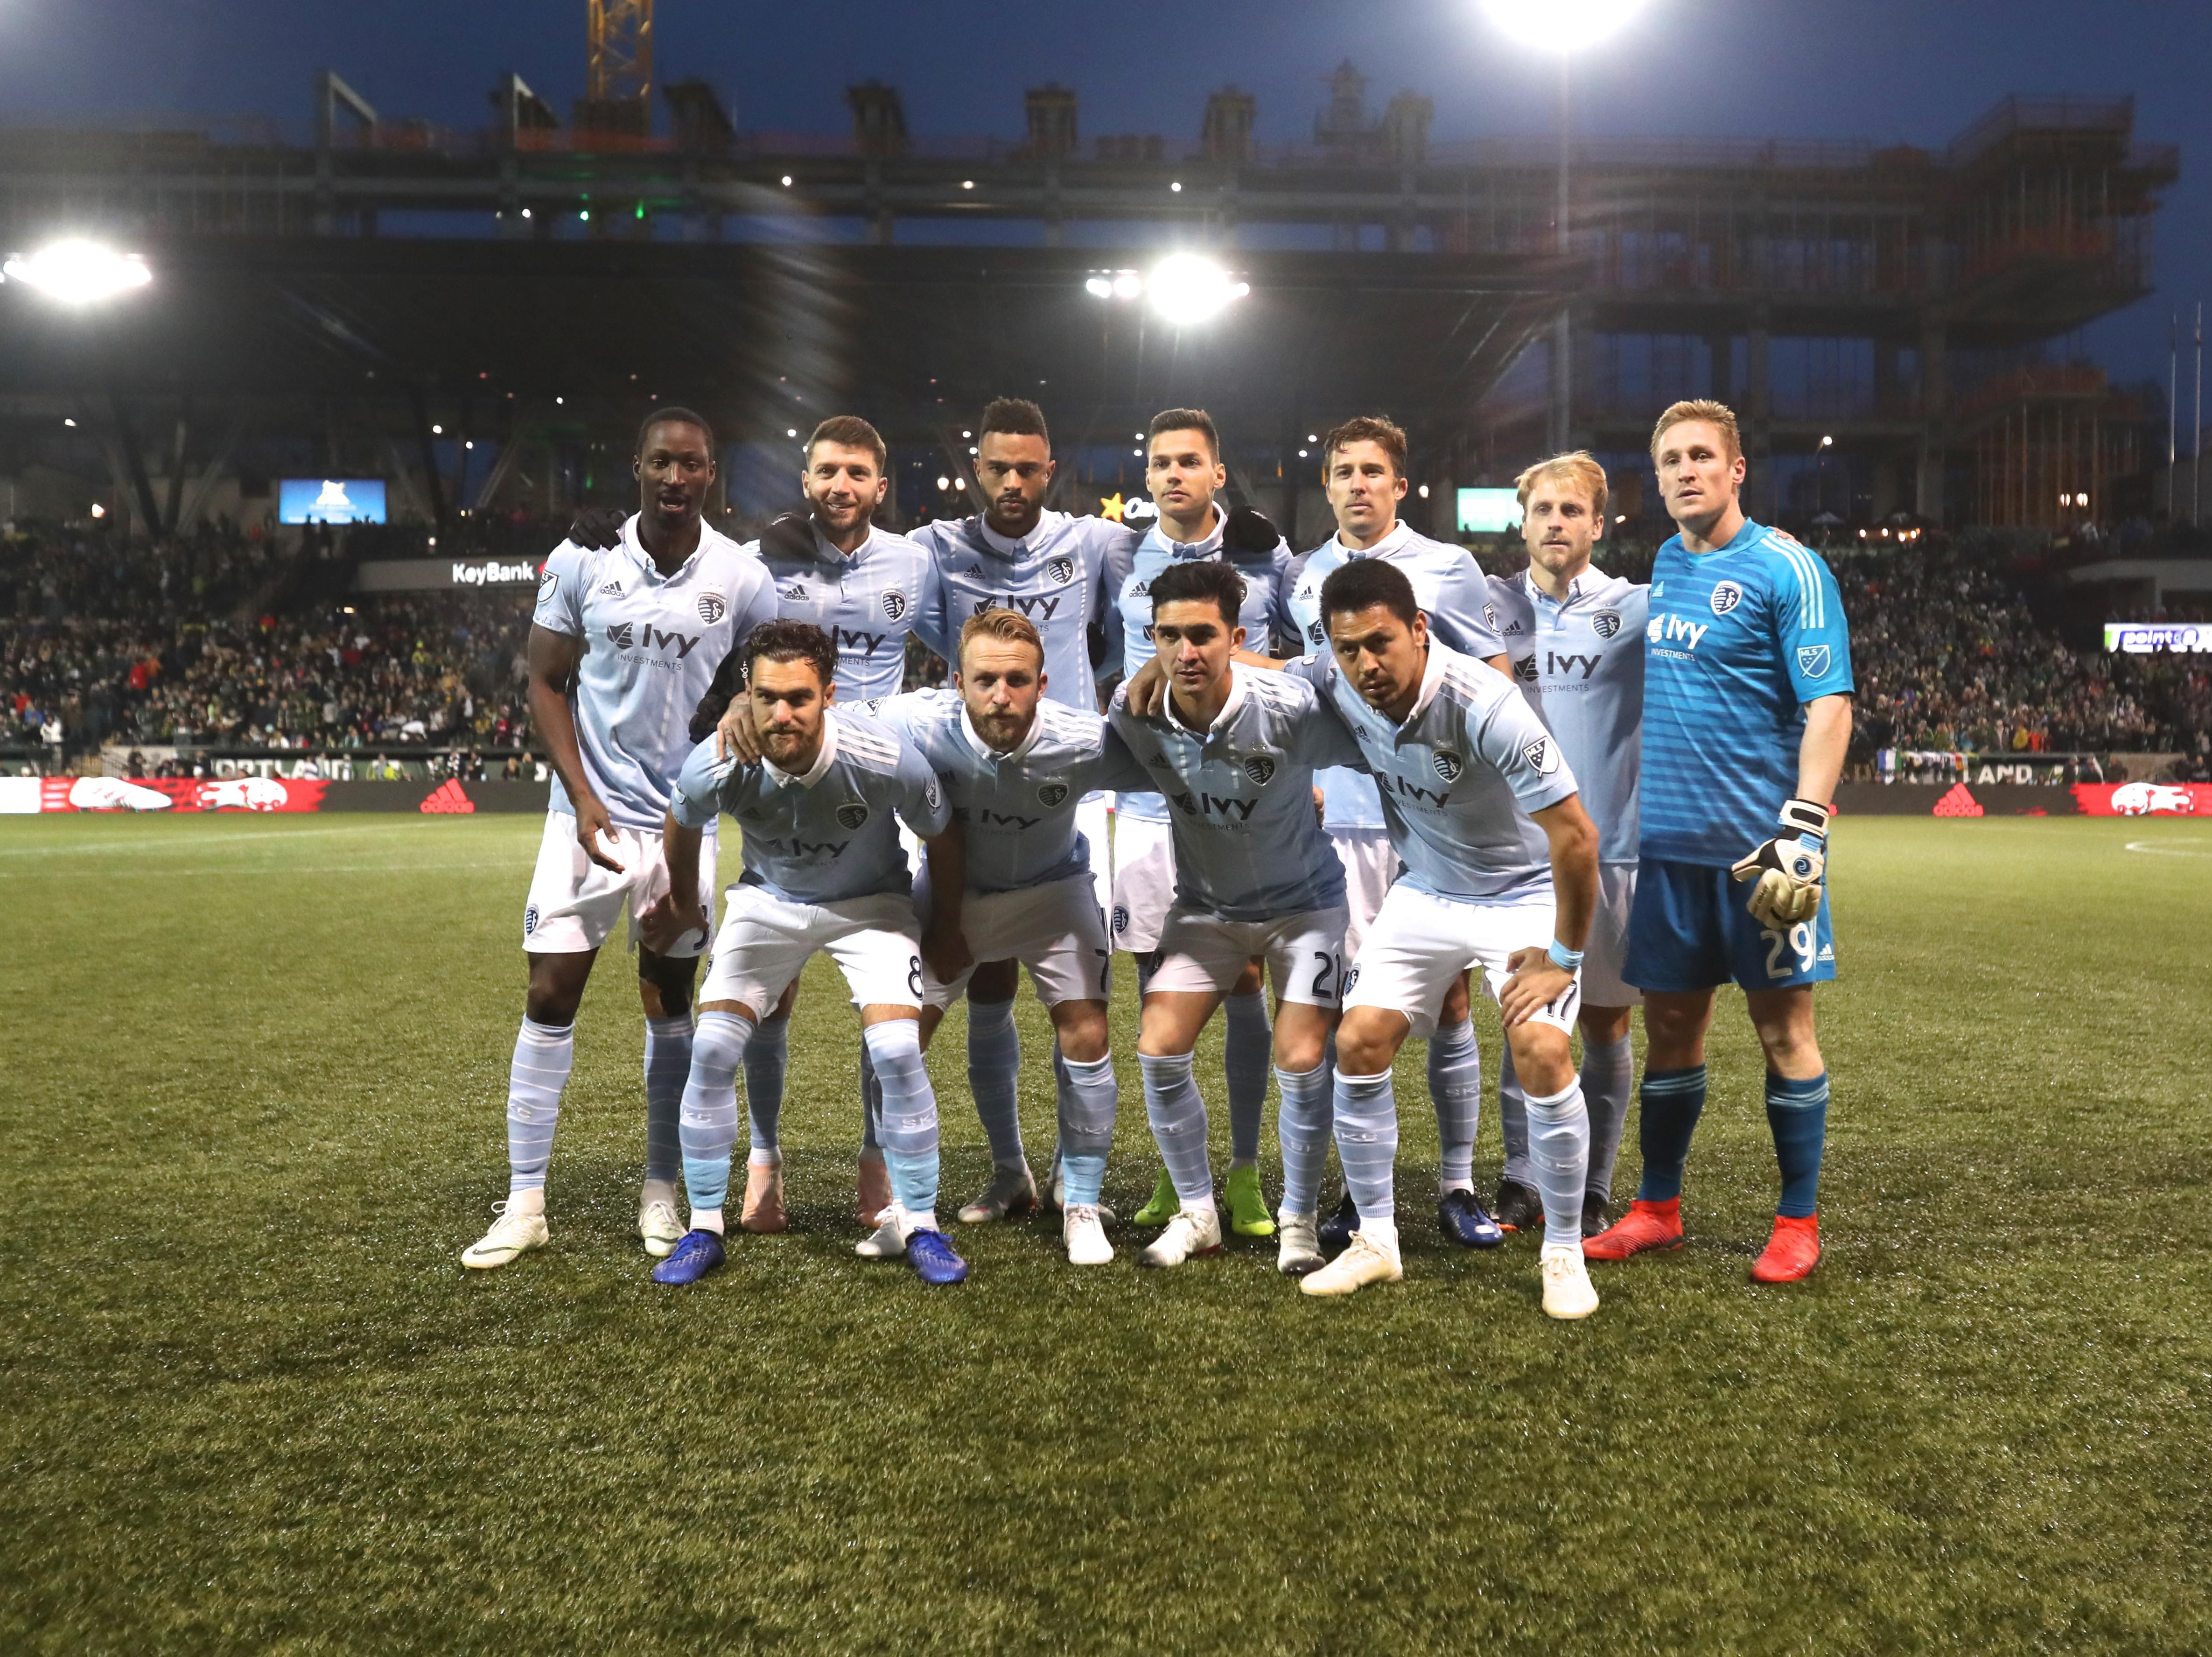 Nov 25, 2018; Portland, OR, USA; Sporting Kansas City starting eleven players pose for a photo prior to their game against the Portland Timbers in the first half of the first leg of the MLS Western Conference Championship at Providence Park. Mandatory Credit: Jaime Valdez-USA TODAY Sports